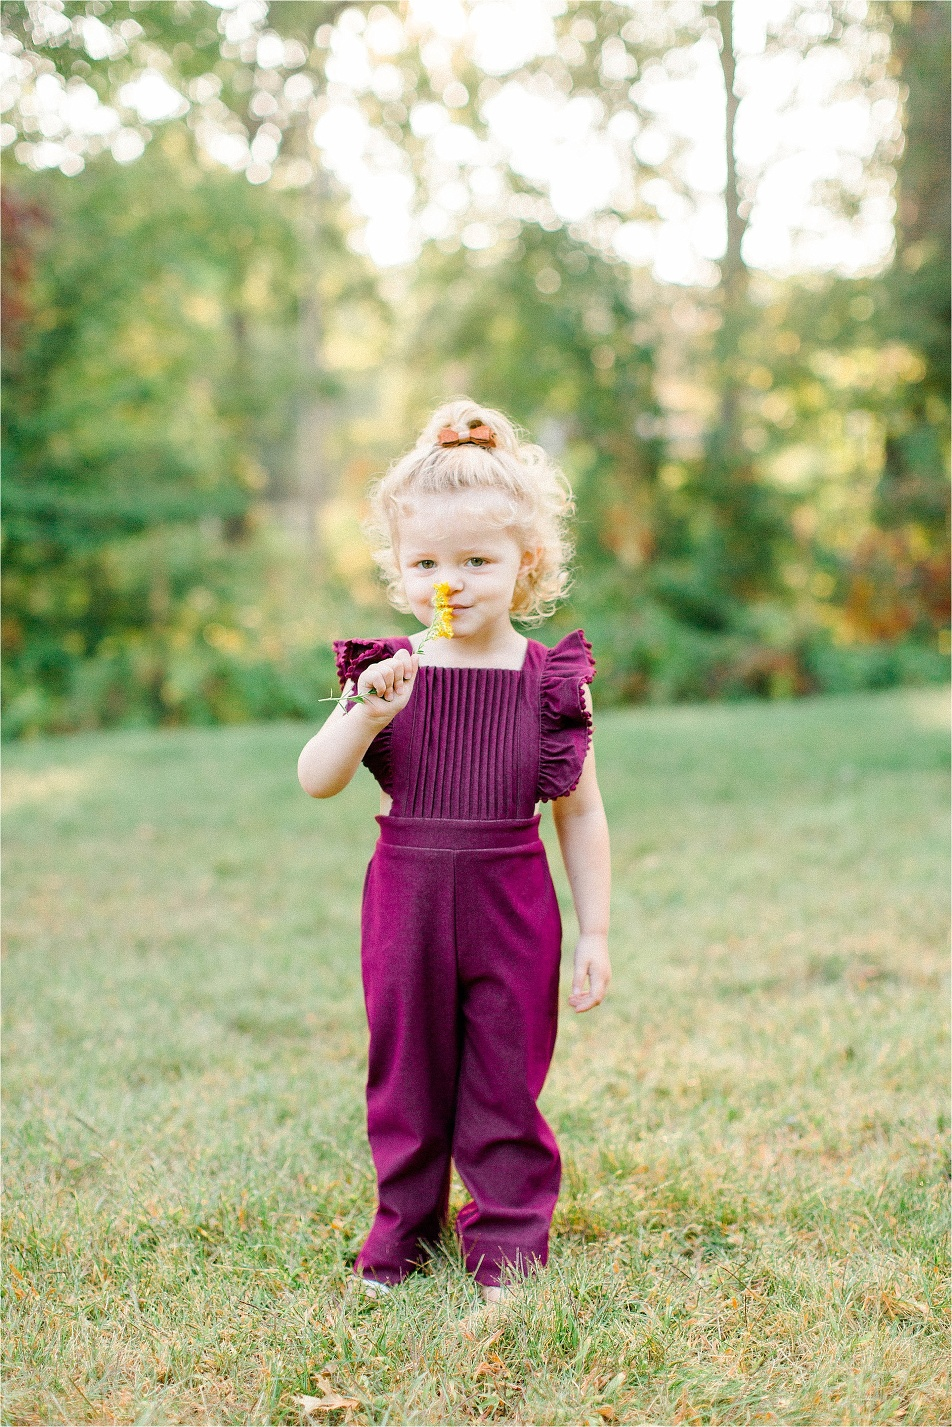 Genevieve_Charlotte_2_years_old_by_Tifani_Lyn__0003